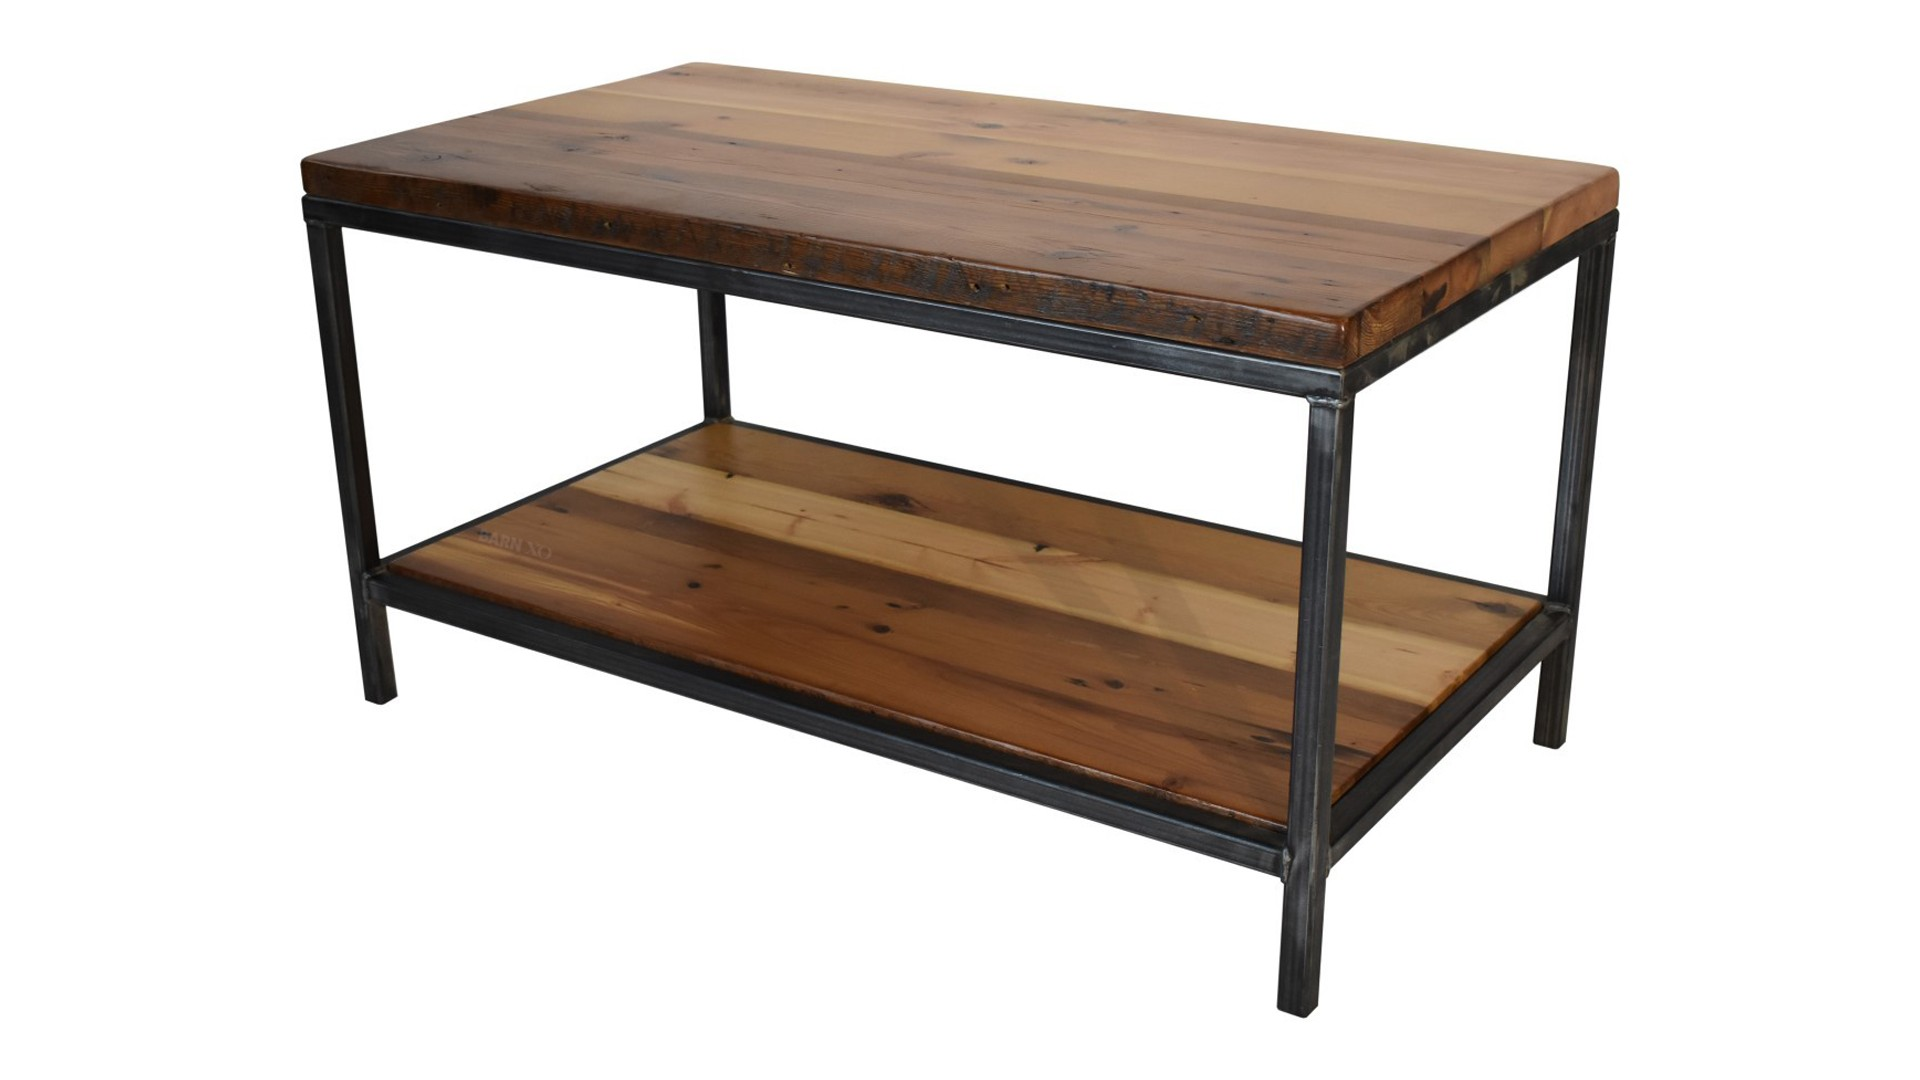 Urban Steel Coffee Table, Floating Shelf